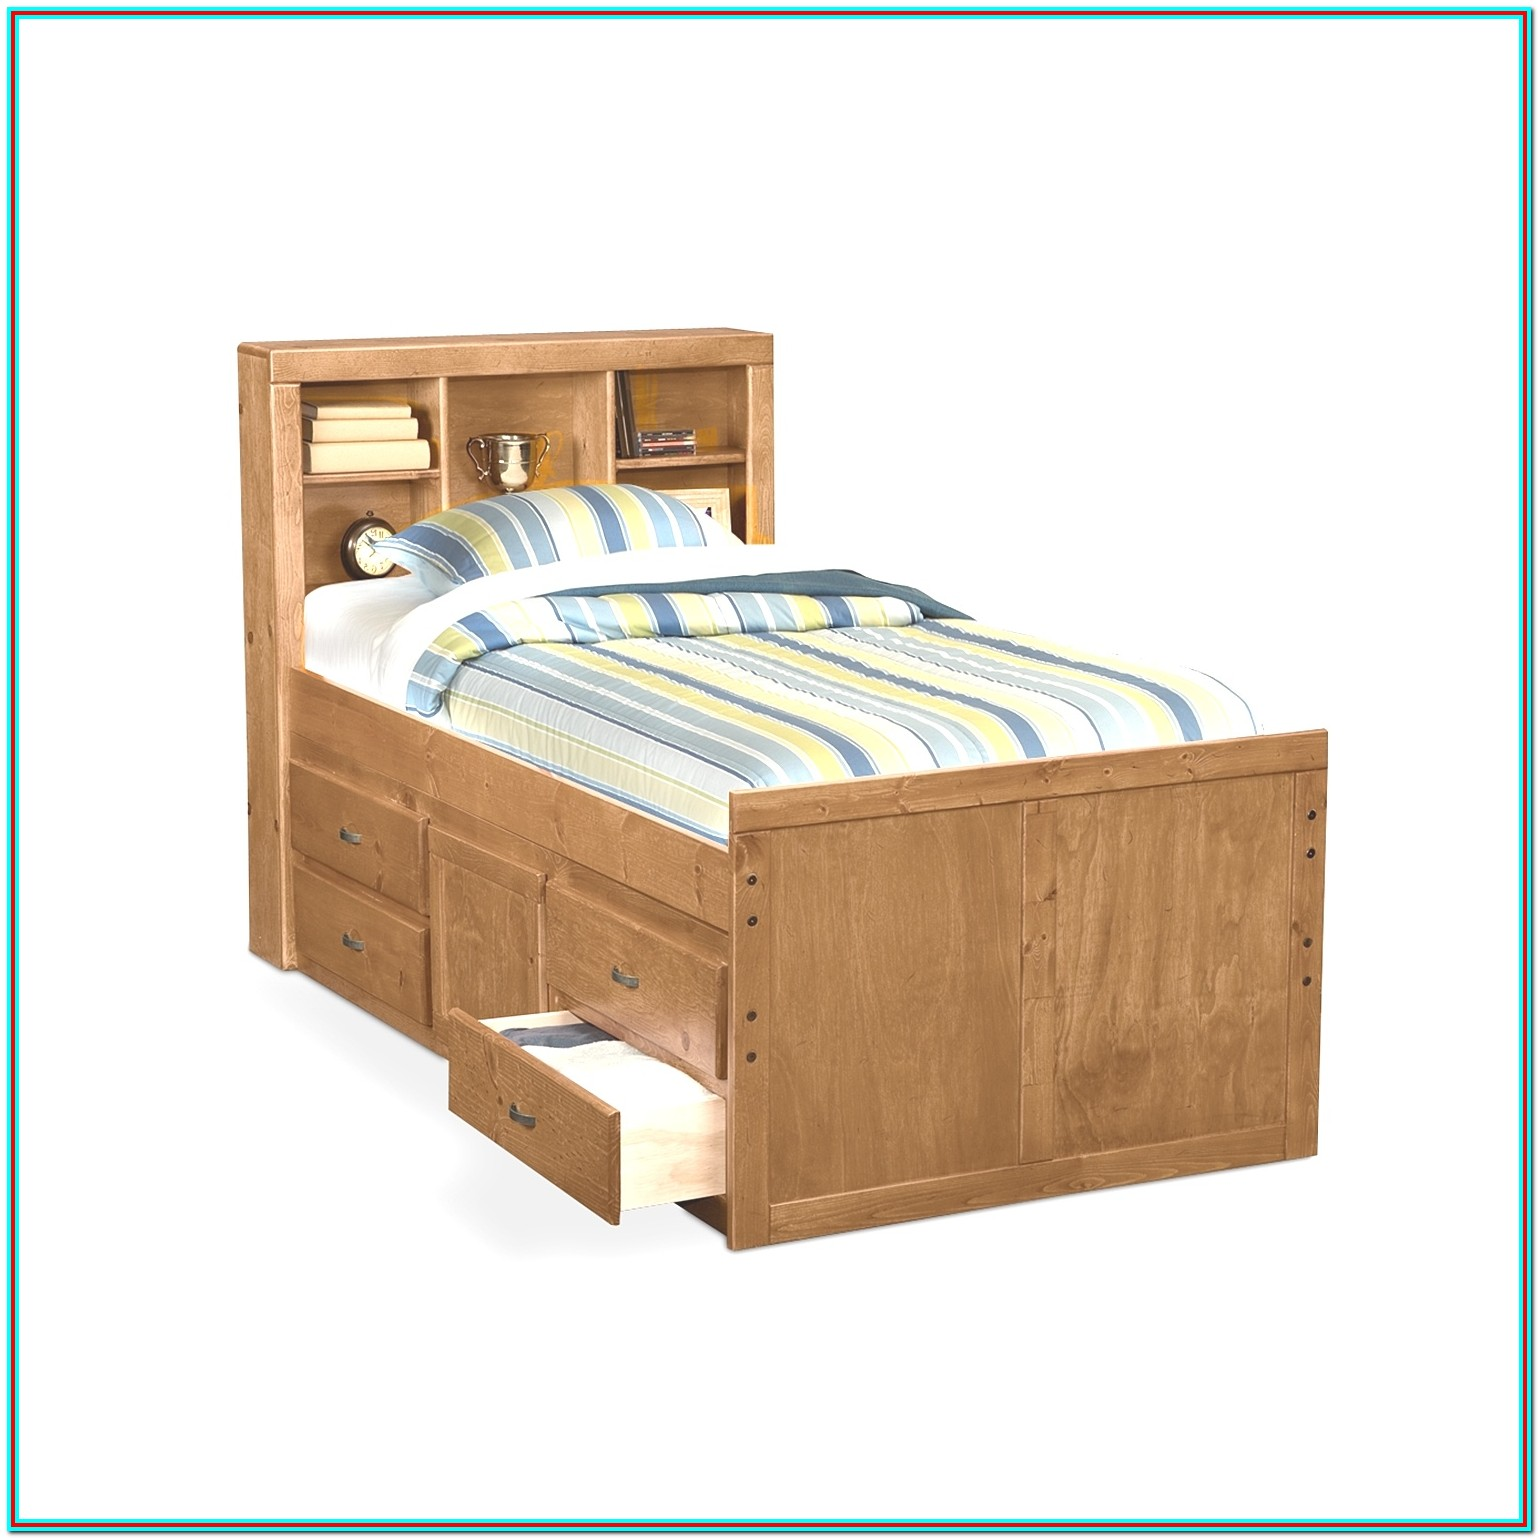 King Size Bed Frame With Drawers Underneath Plans